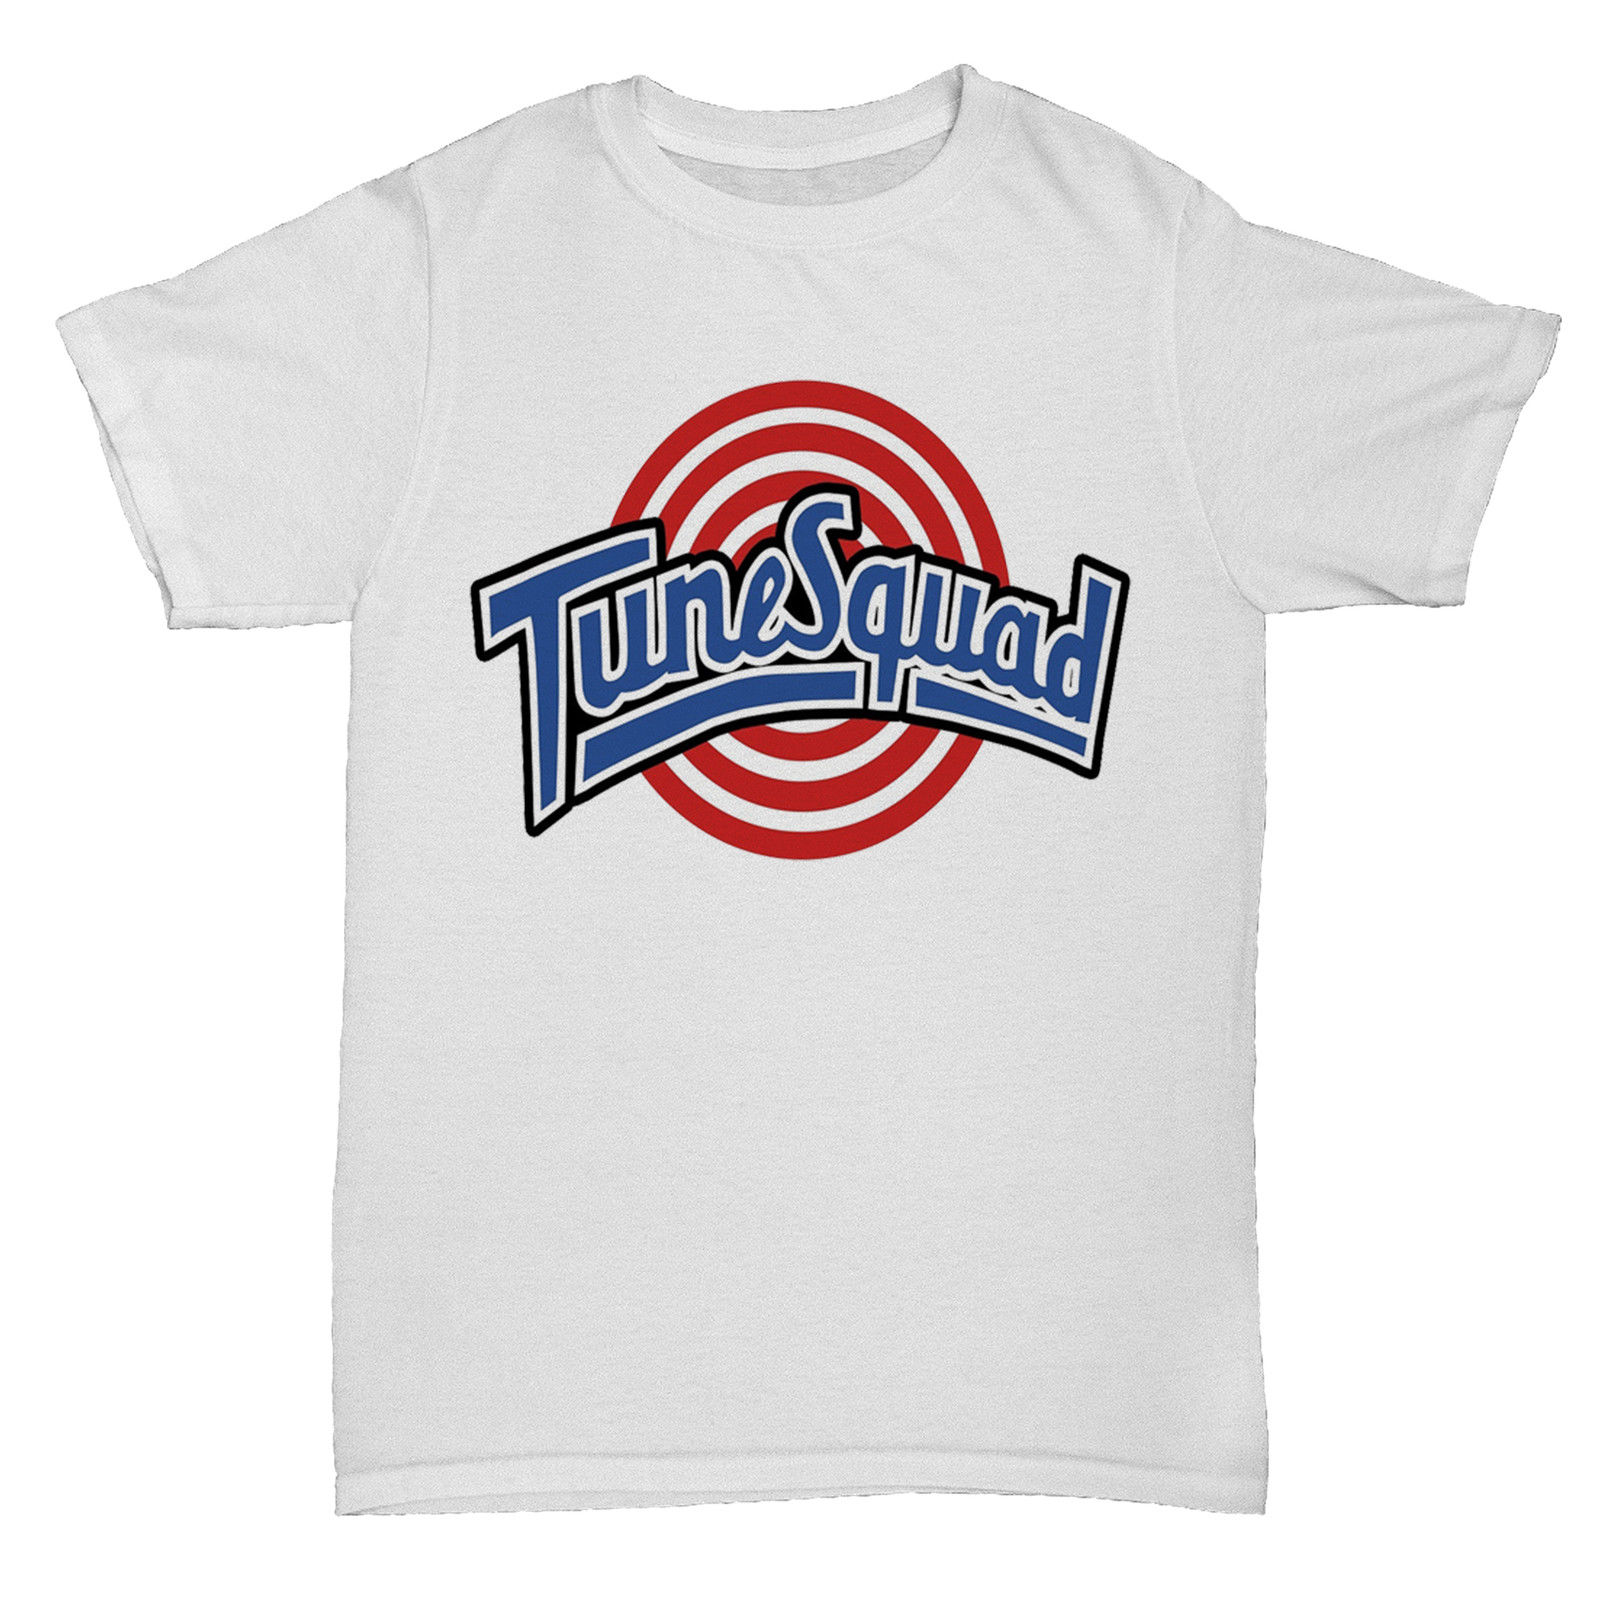 TUNE SQUAD INSPIRED SPACE JAM 90S FILM MOVIE RETRO CULT BASKETBALLer T Shirt Summer New  ...